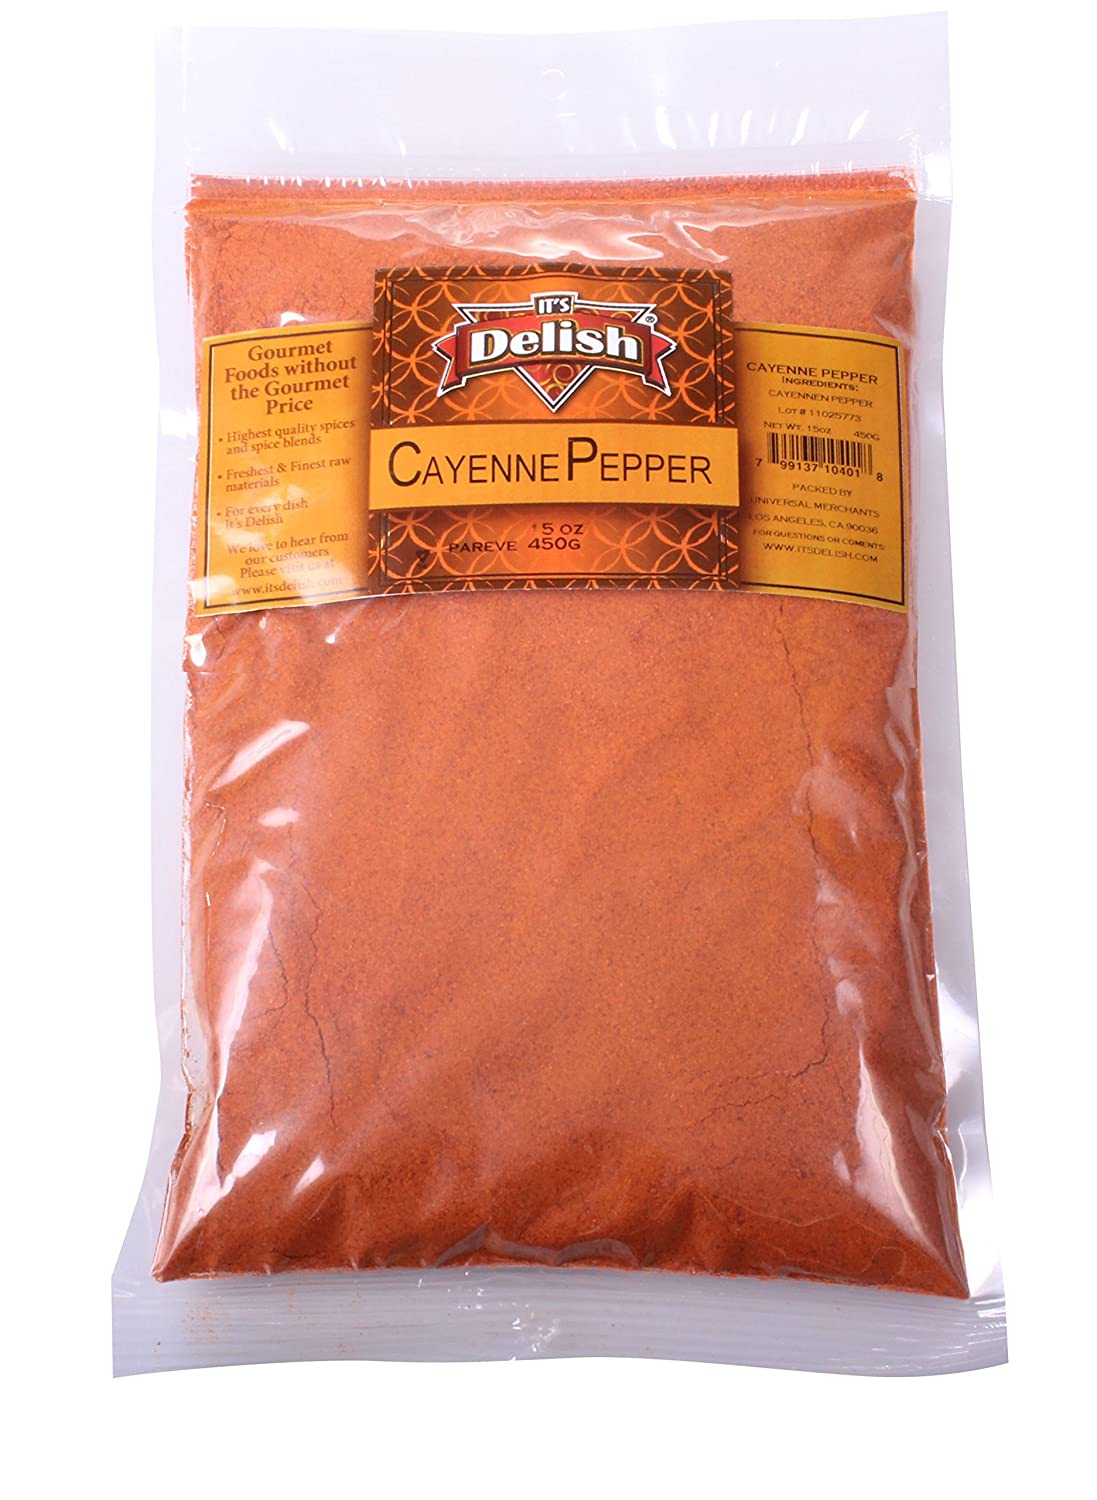 Cayenne Pepper by Its Delish (1 lb)